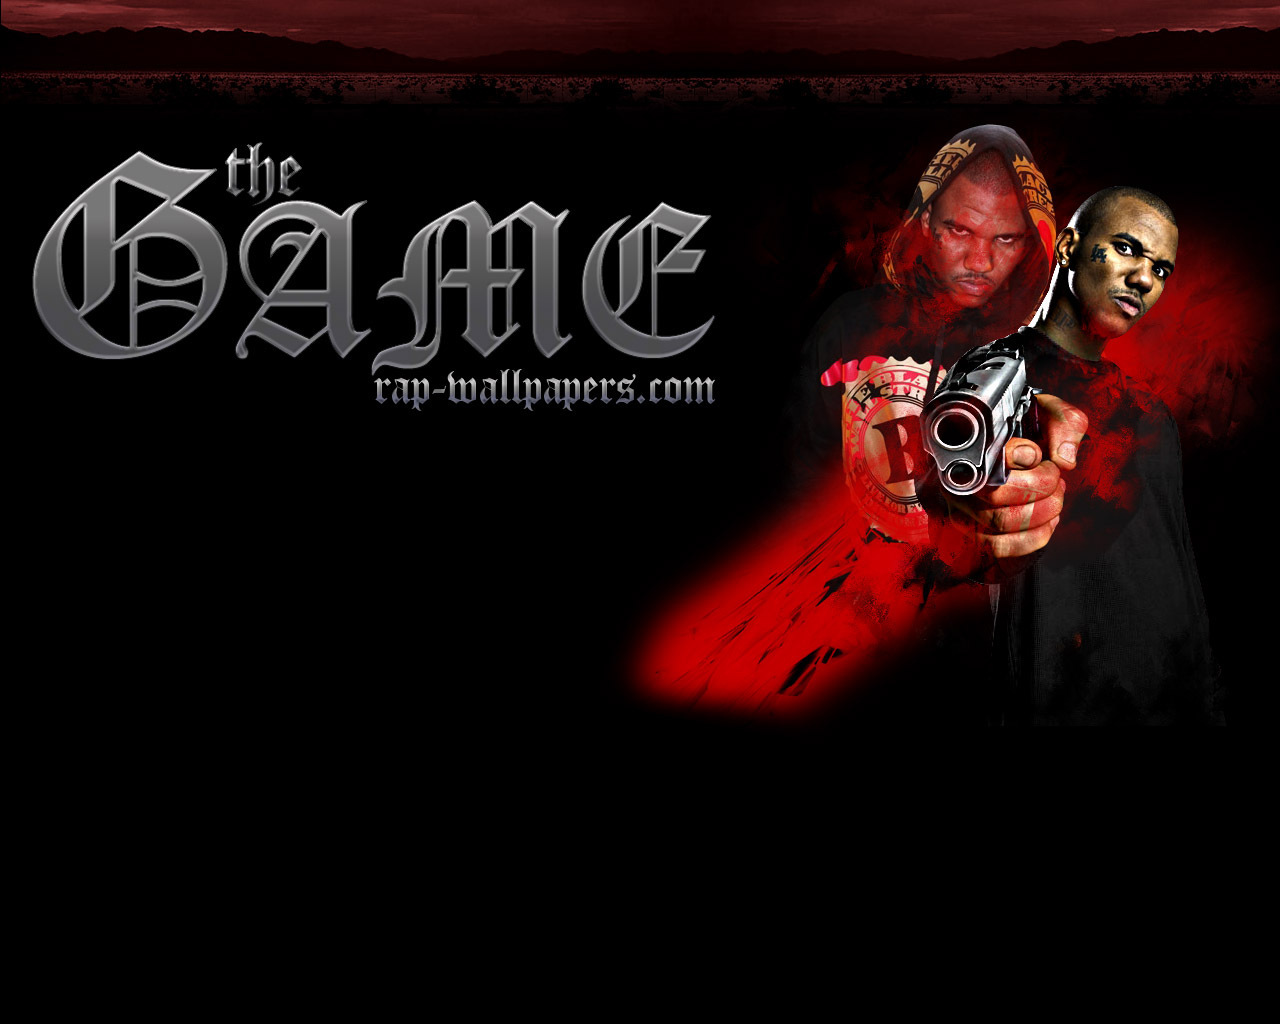 The Game   The Game Rapper Wallpaper 3619056 1280x1024